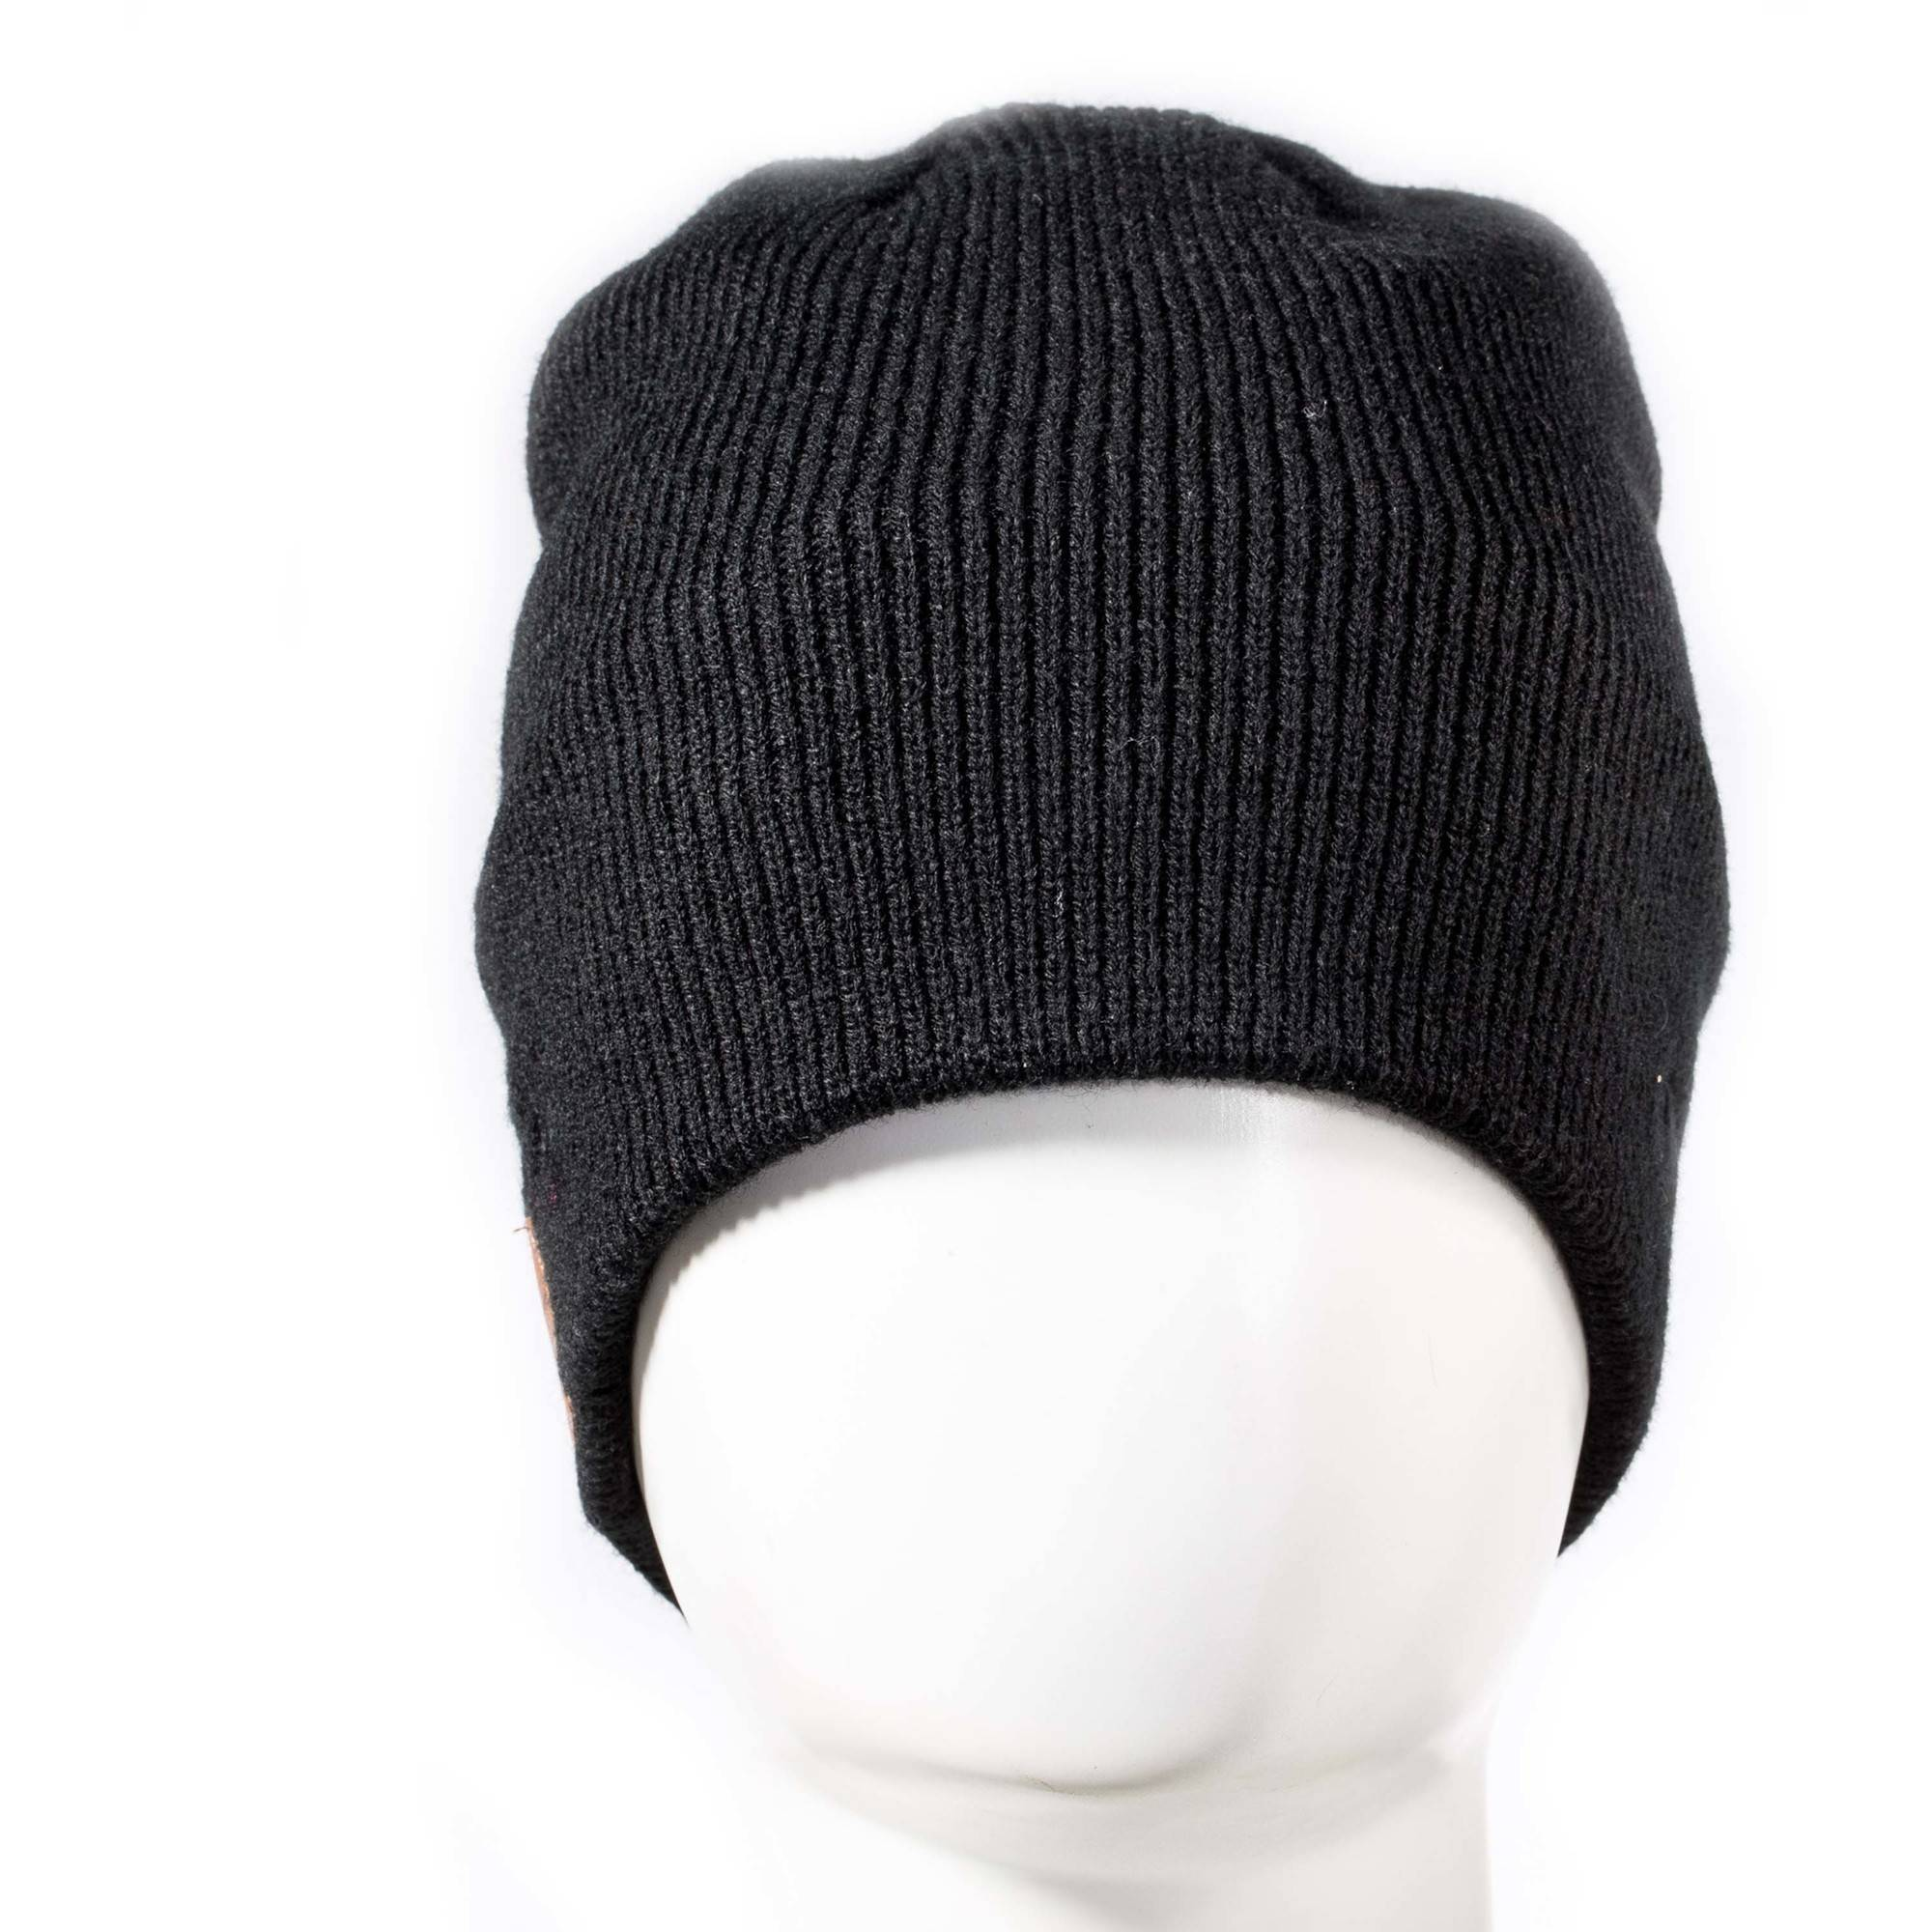 5ccc6c1634a63 Tenergy 52400 Bluetooth Basic Knit Beanie